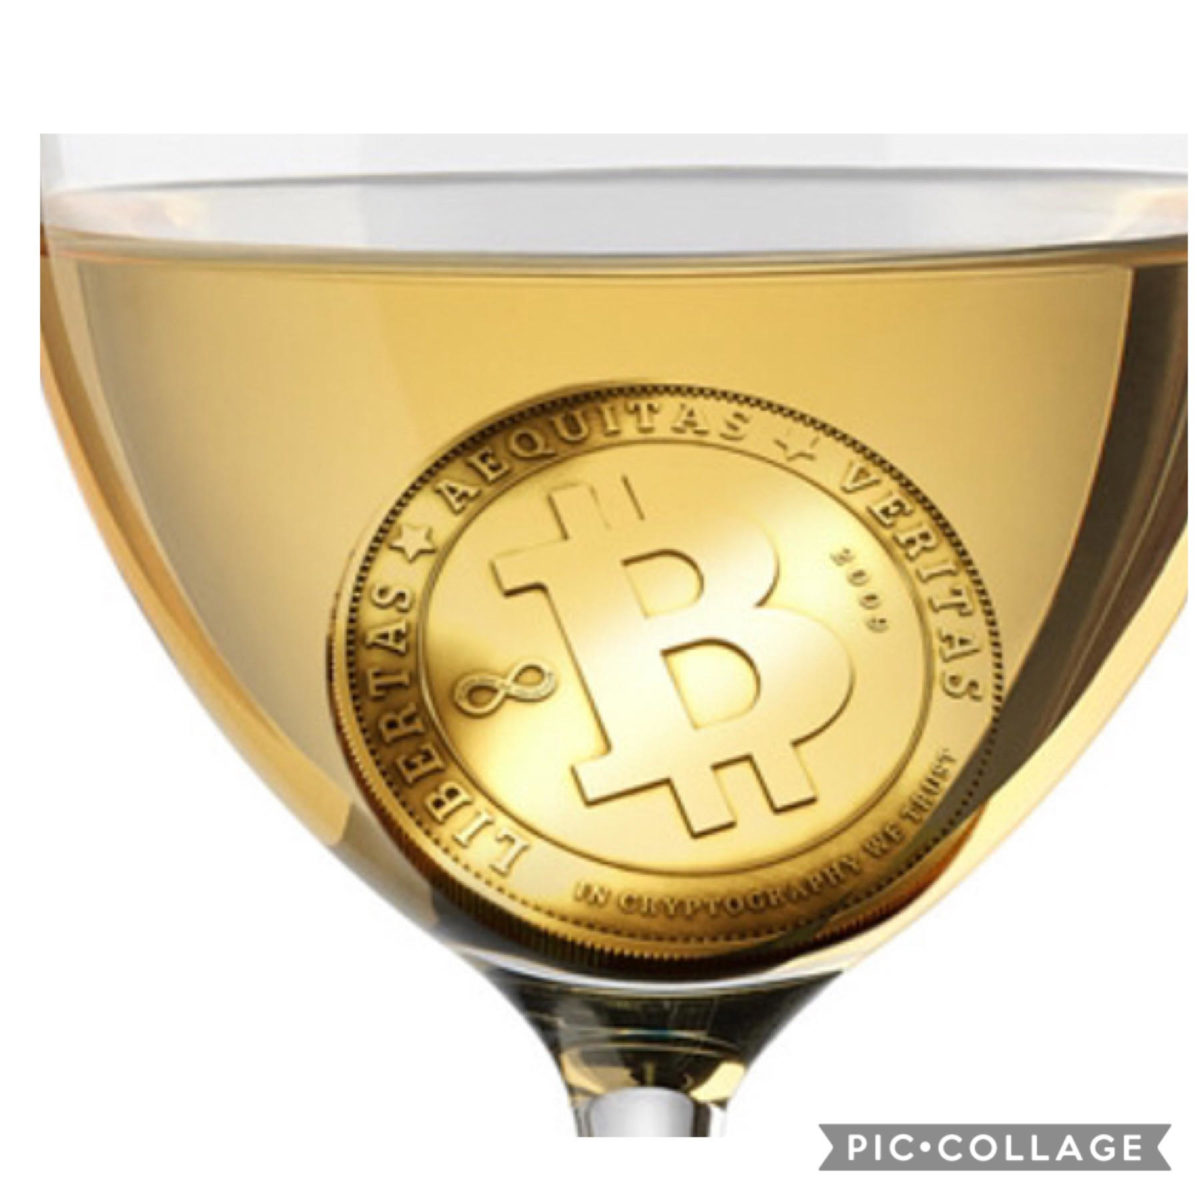 IronGate.Wine becomes the first online wine retailer to accept cryptocurrency